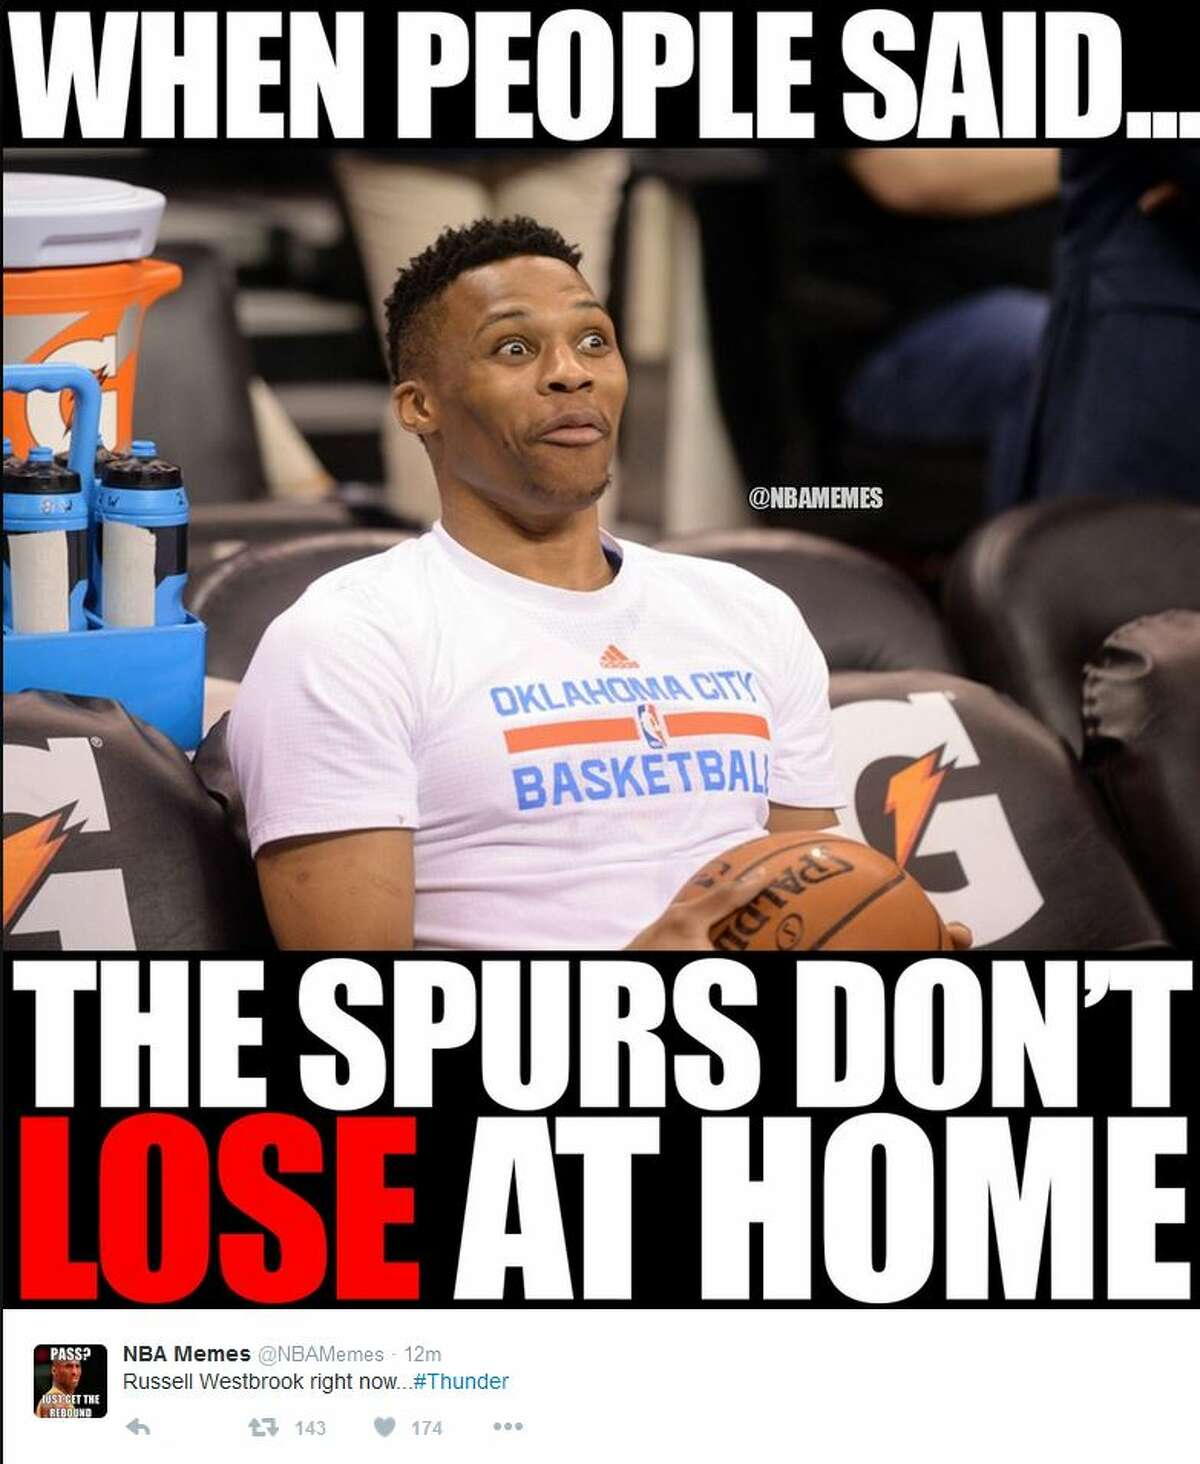 When people said Spurs don't lose at home